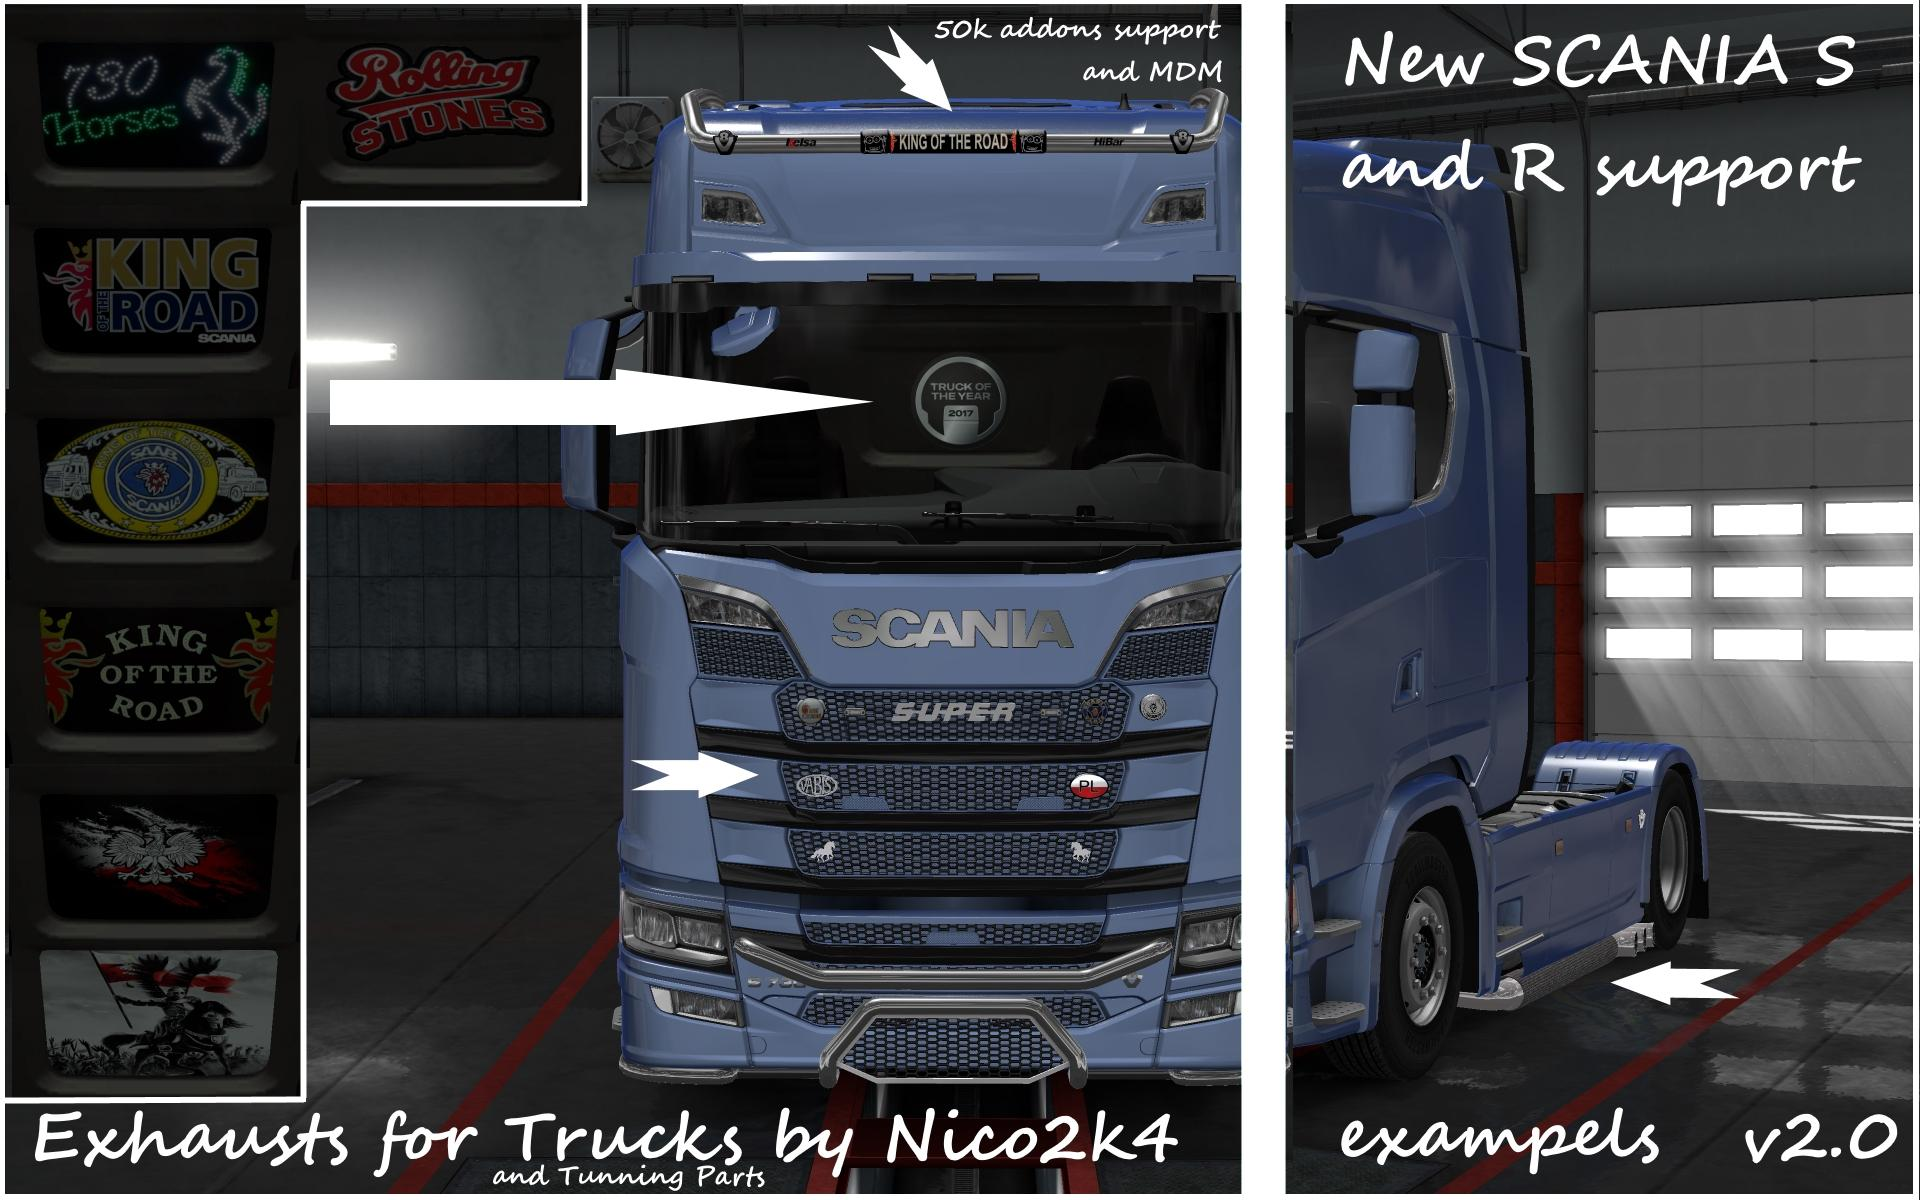 Exhausts tuning parts for trucks v2 0 1 30 tuning mod